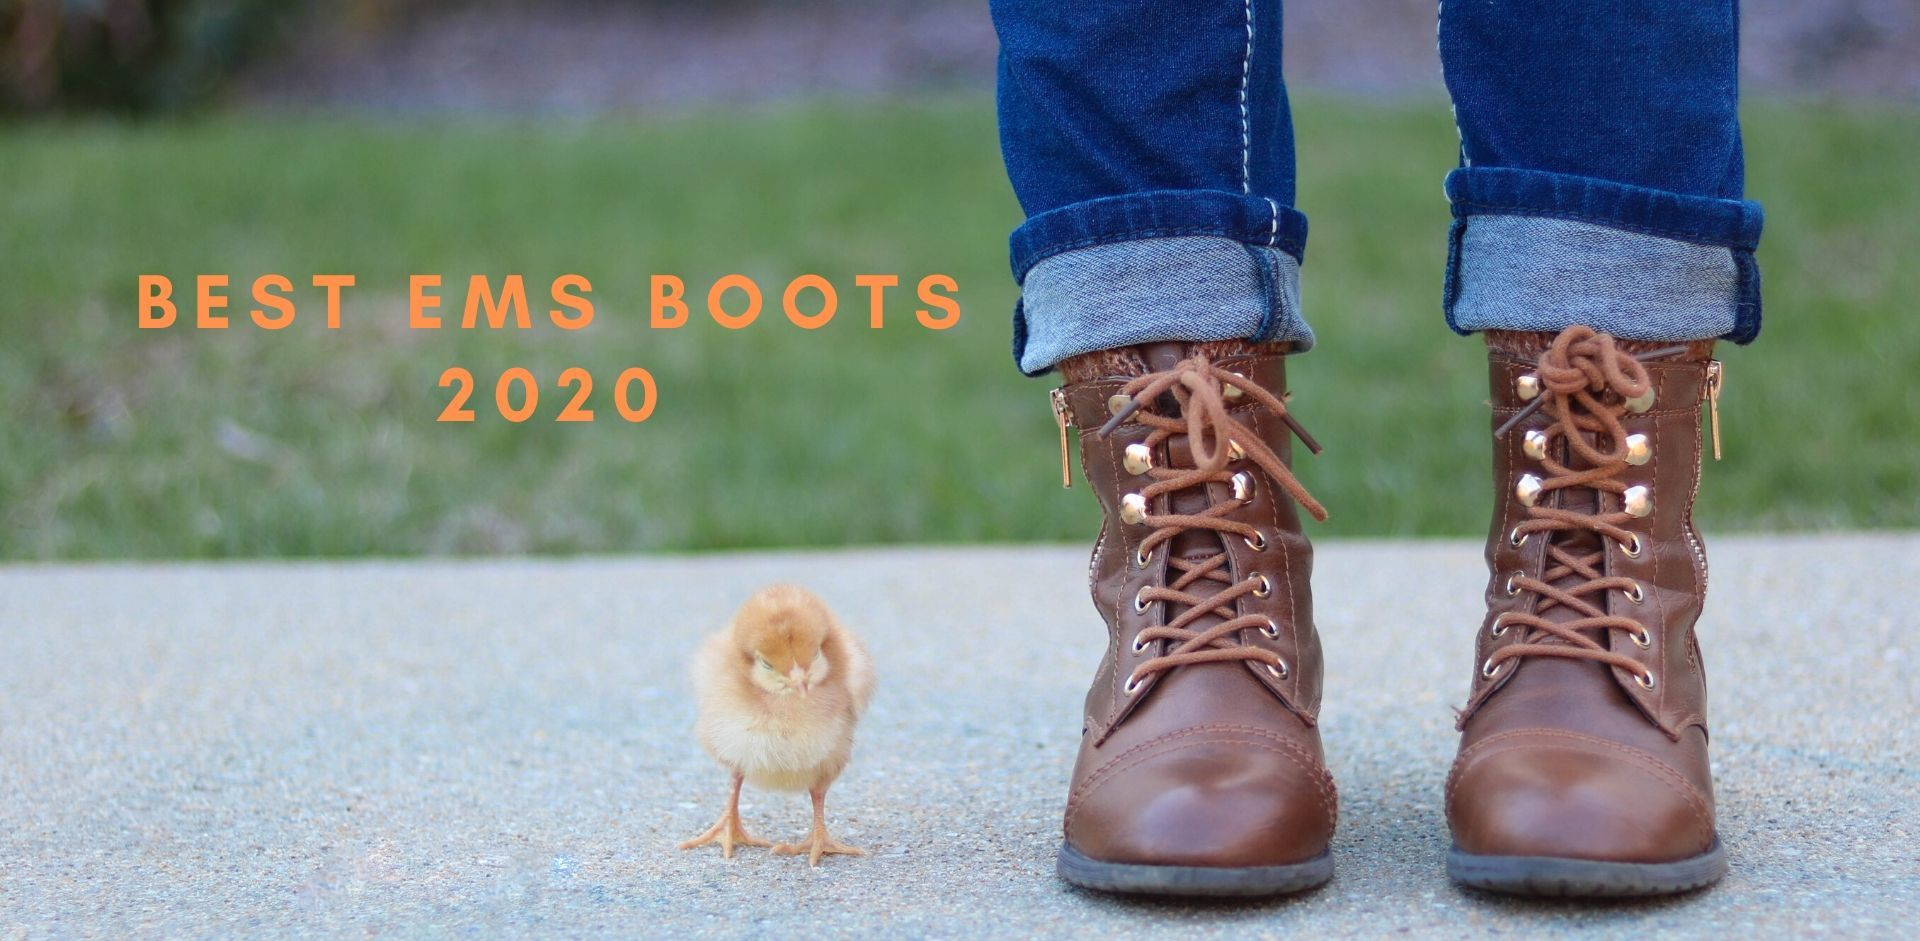 best boots for ems workers